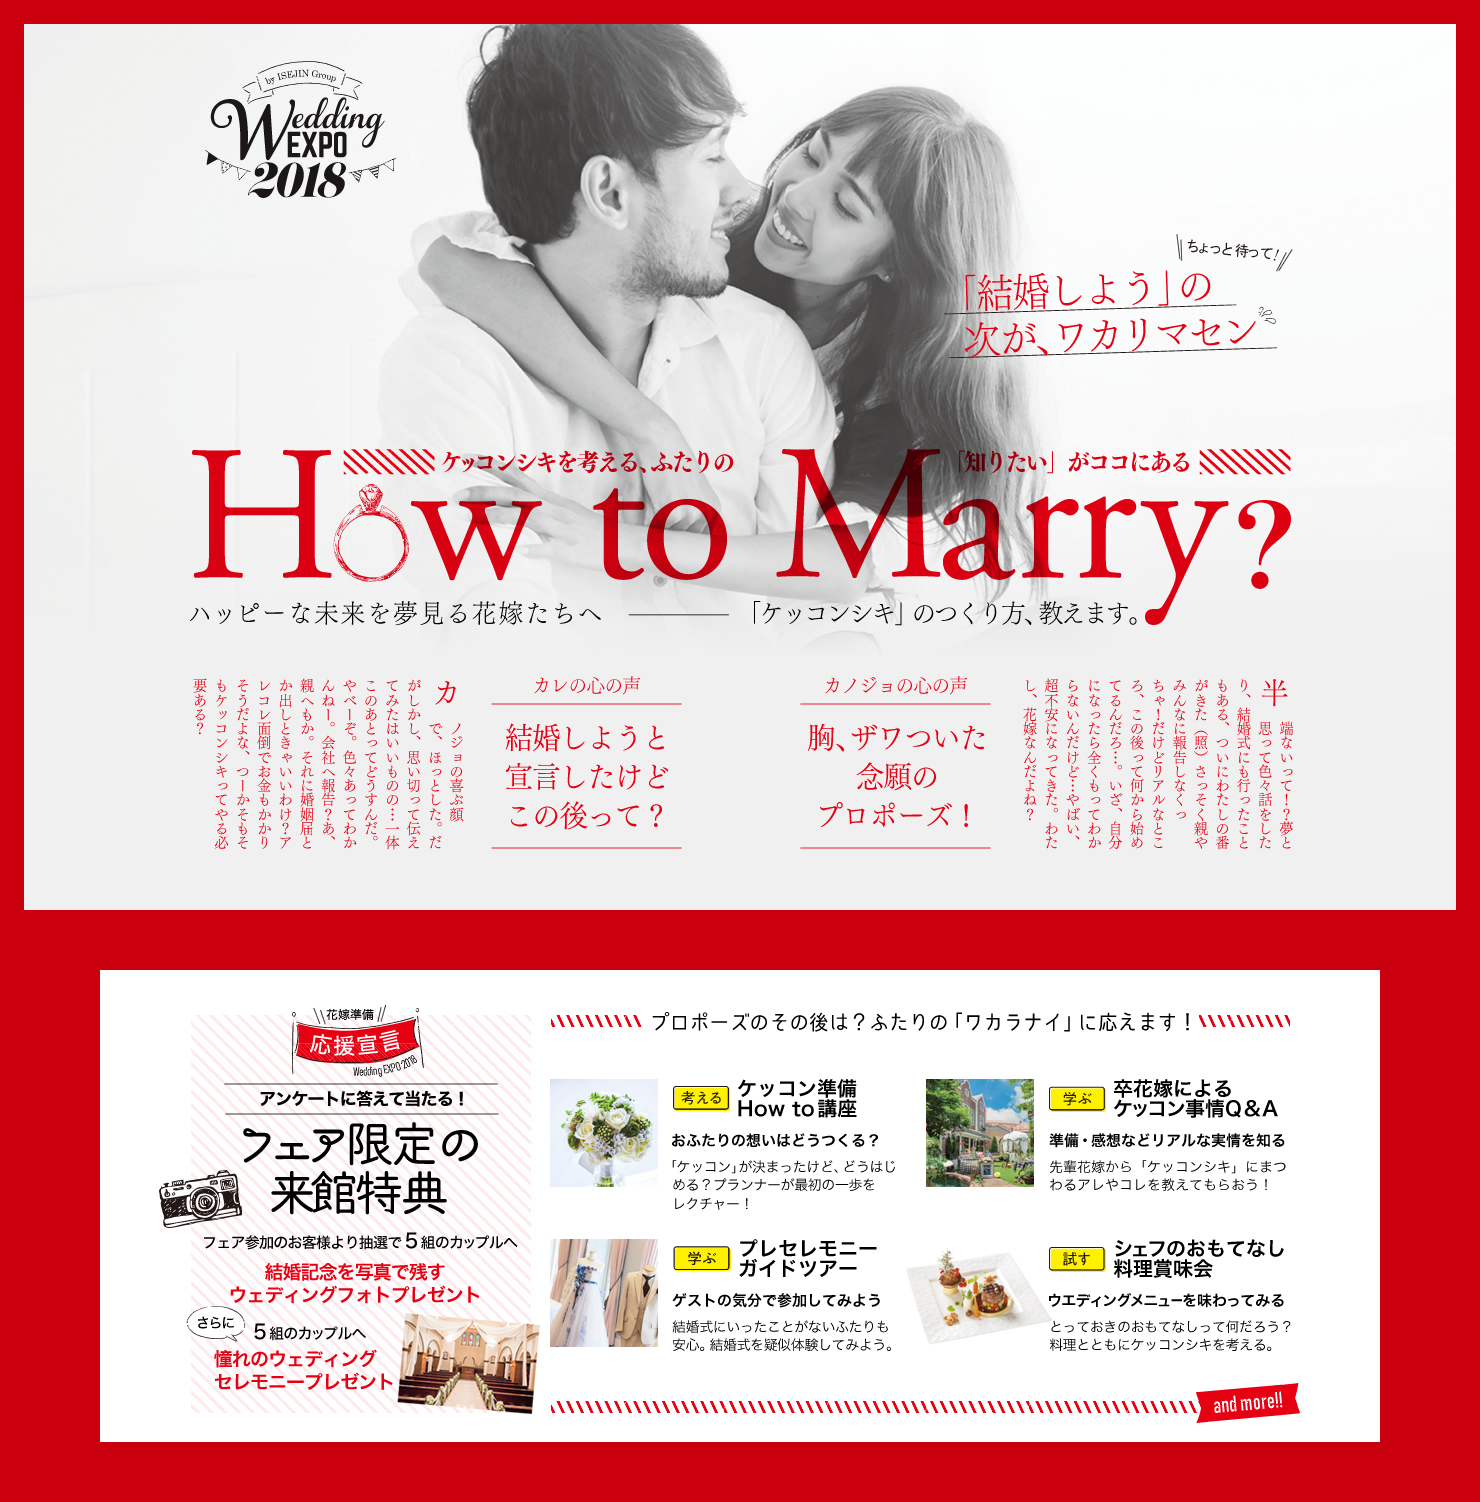 How to marry